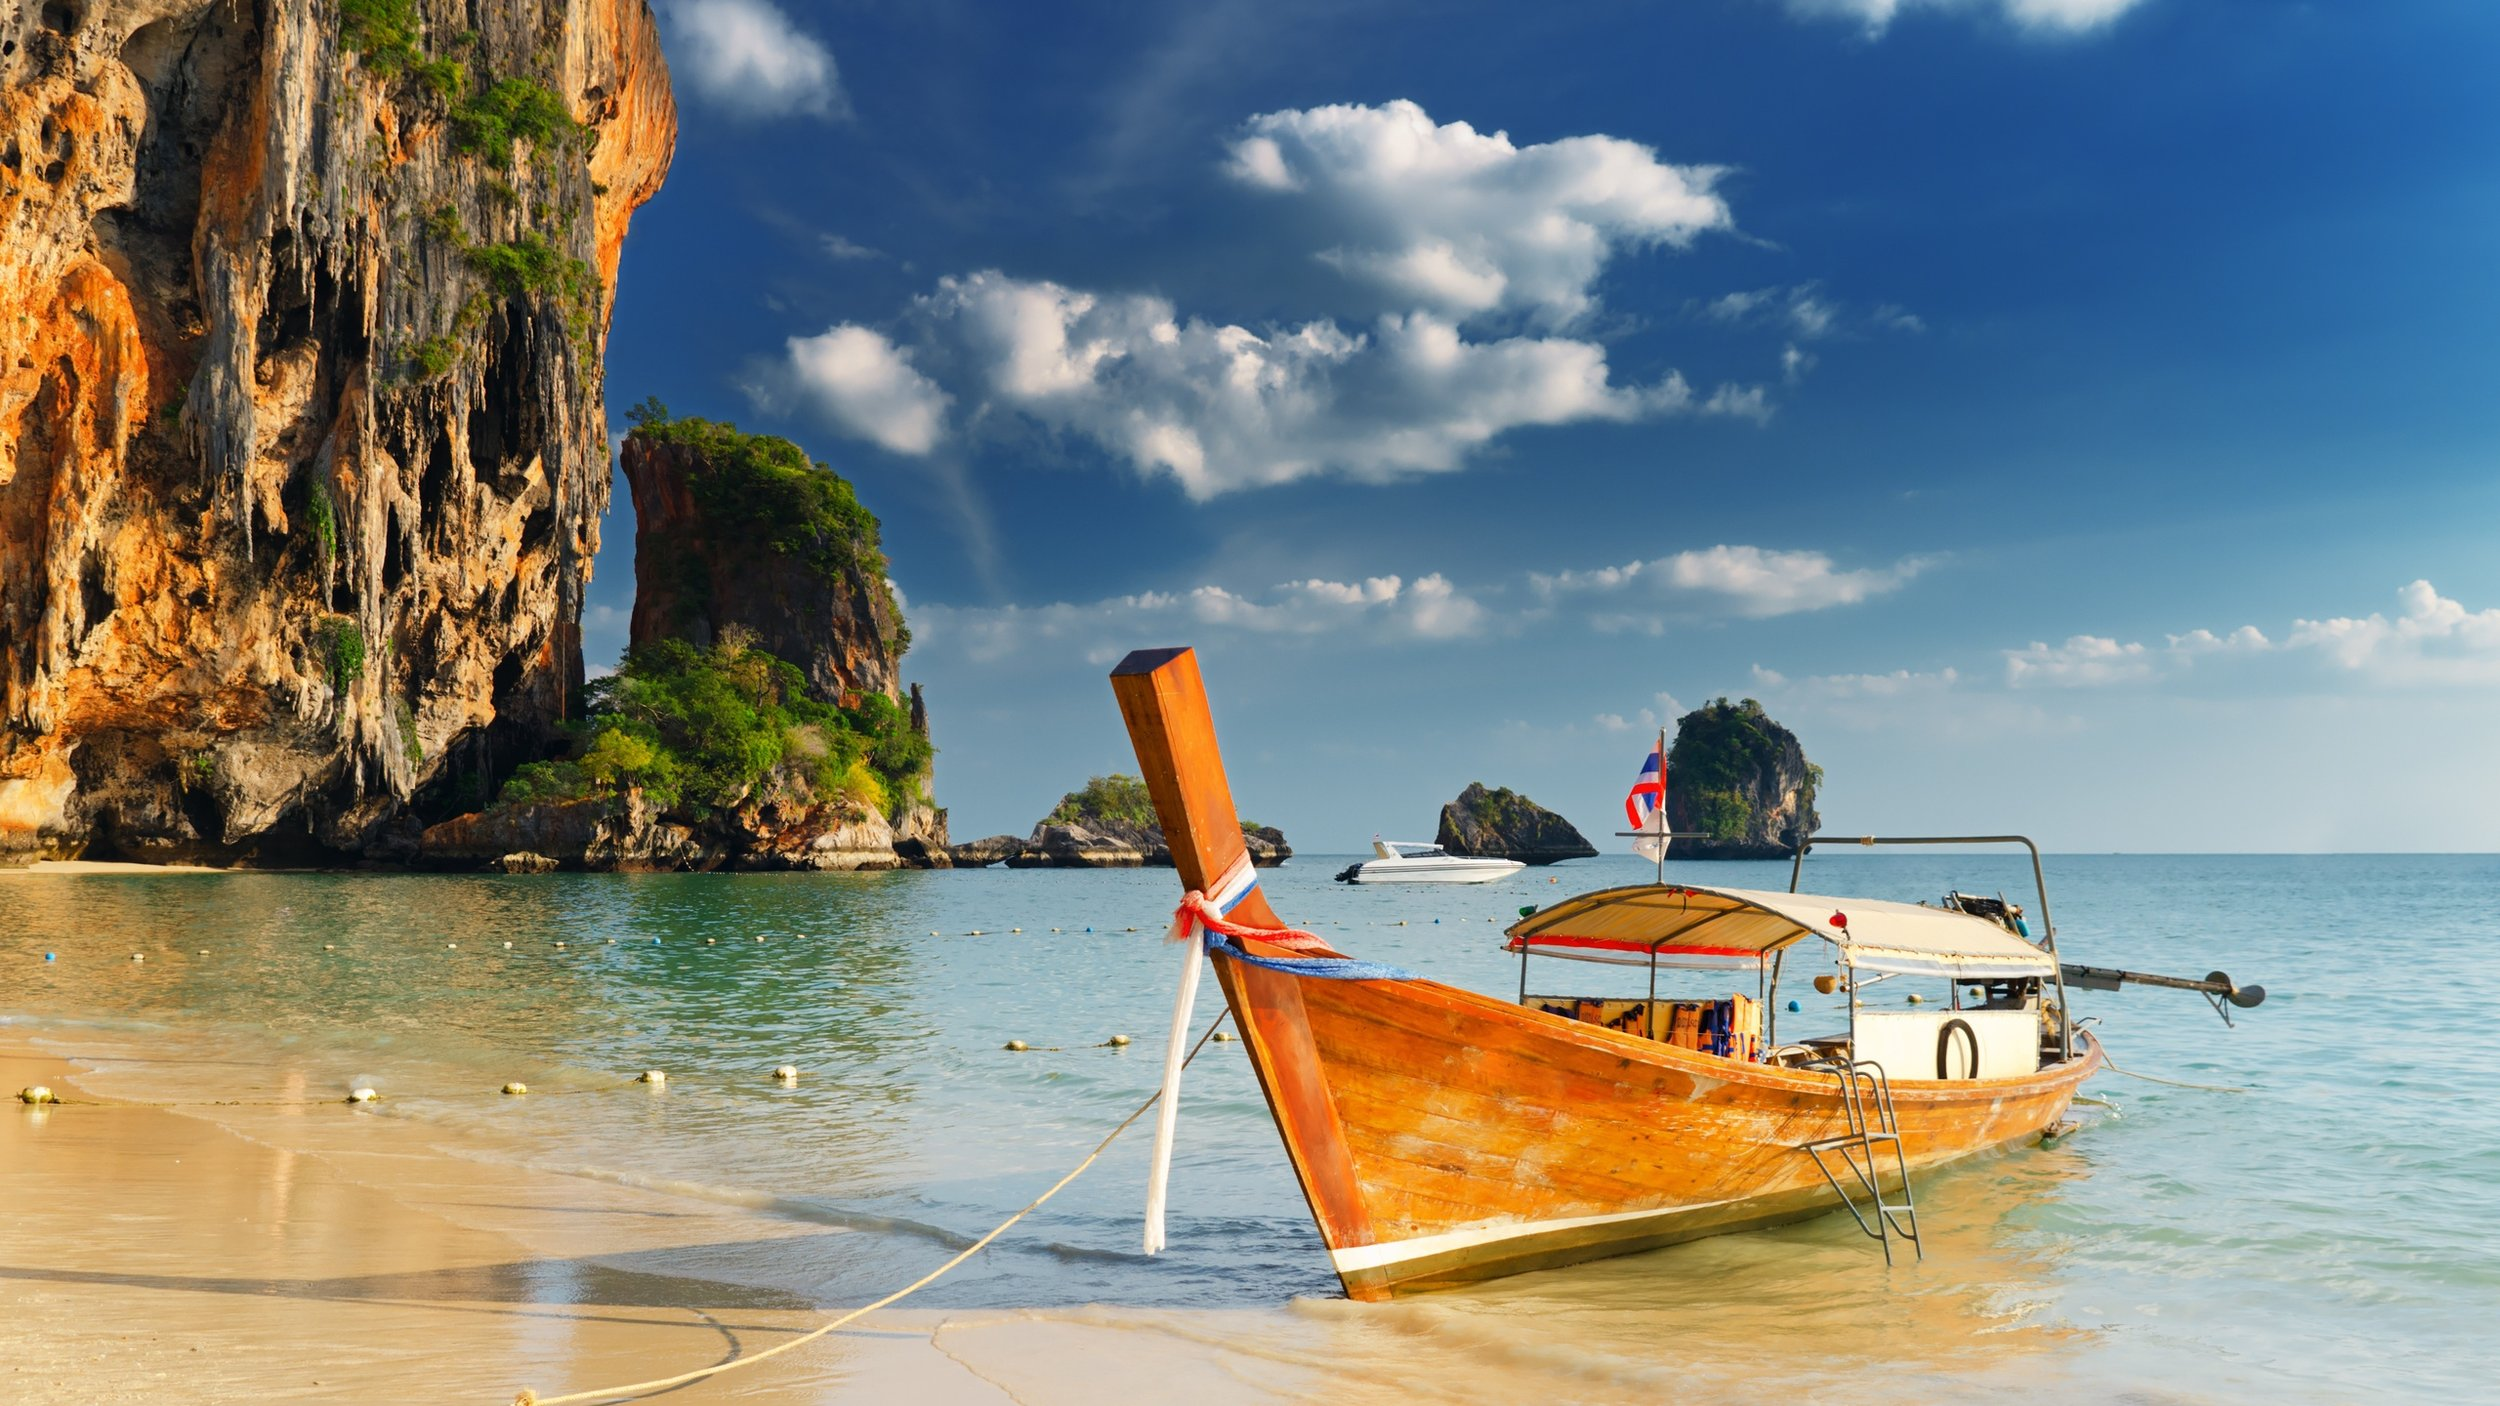 """Visit Vietnam""   Visit Halong Bay, Hanoi, Mekong Delta, be amazed   We tailor make Vietnam, Cambodia and Indochina packages   Want more"